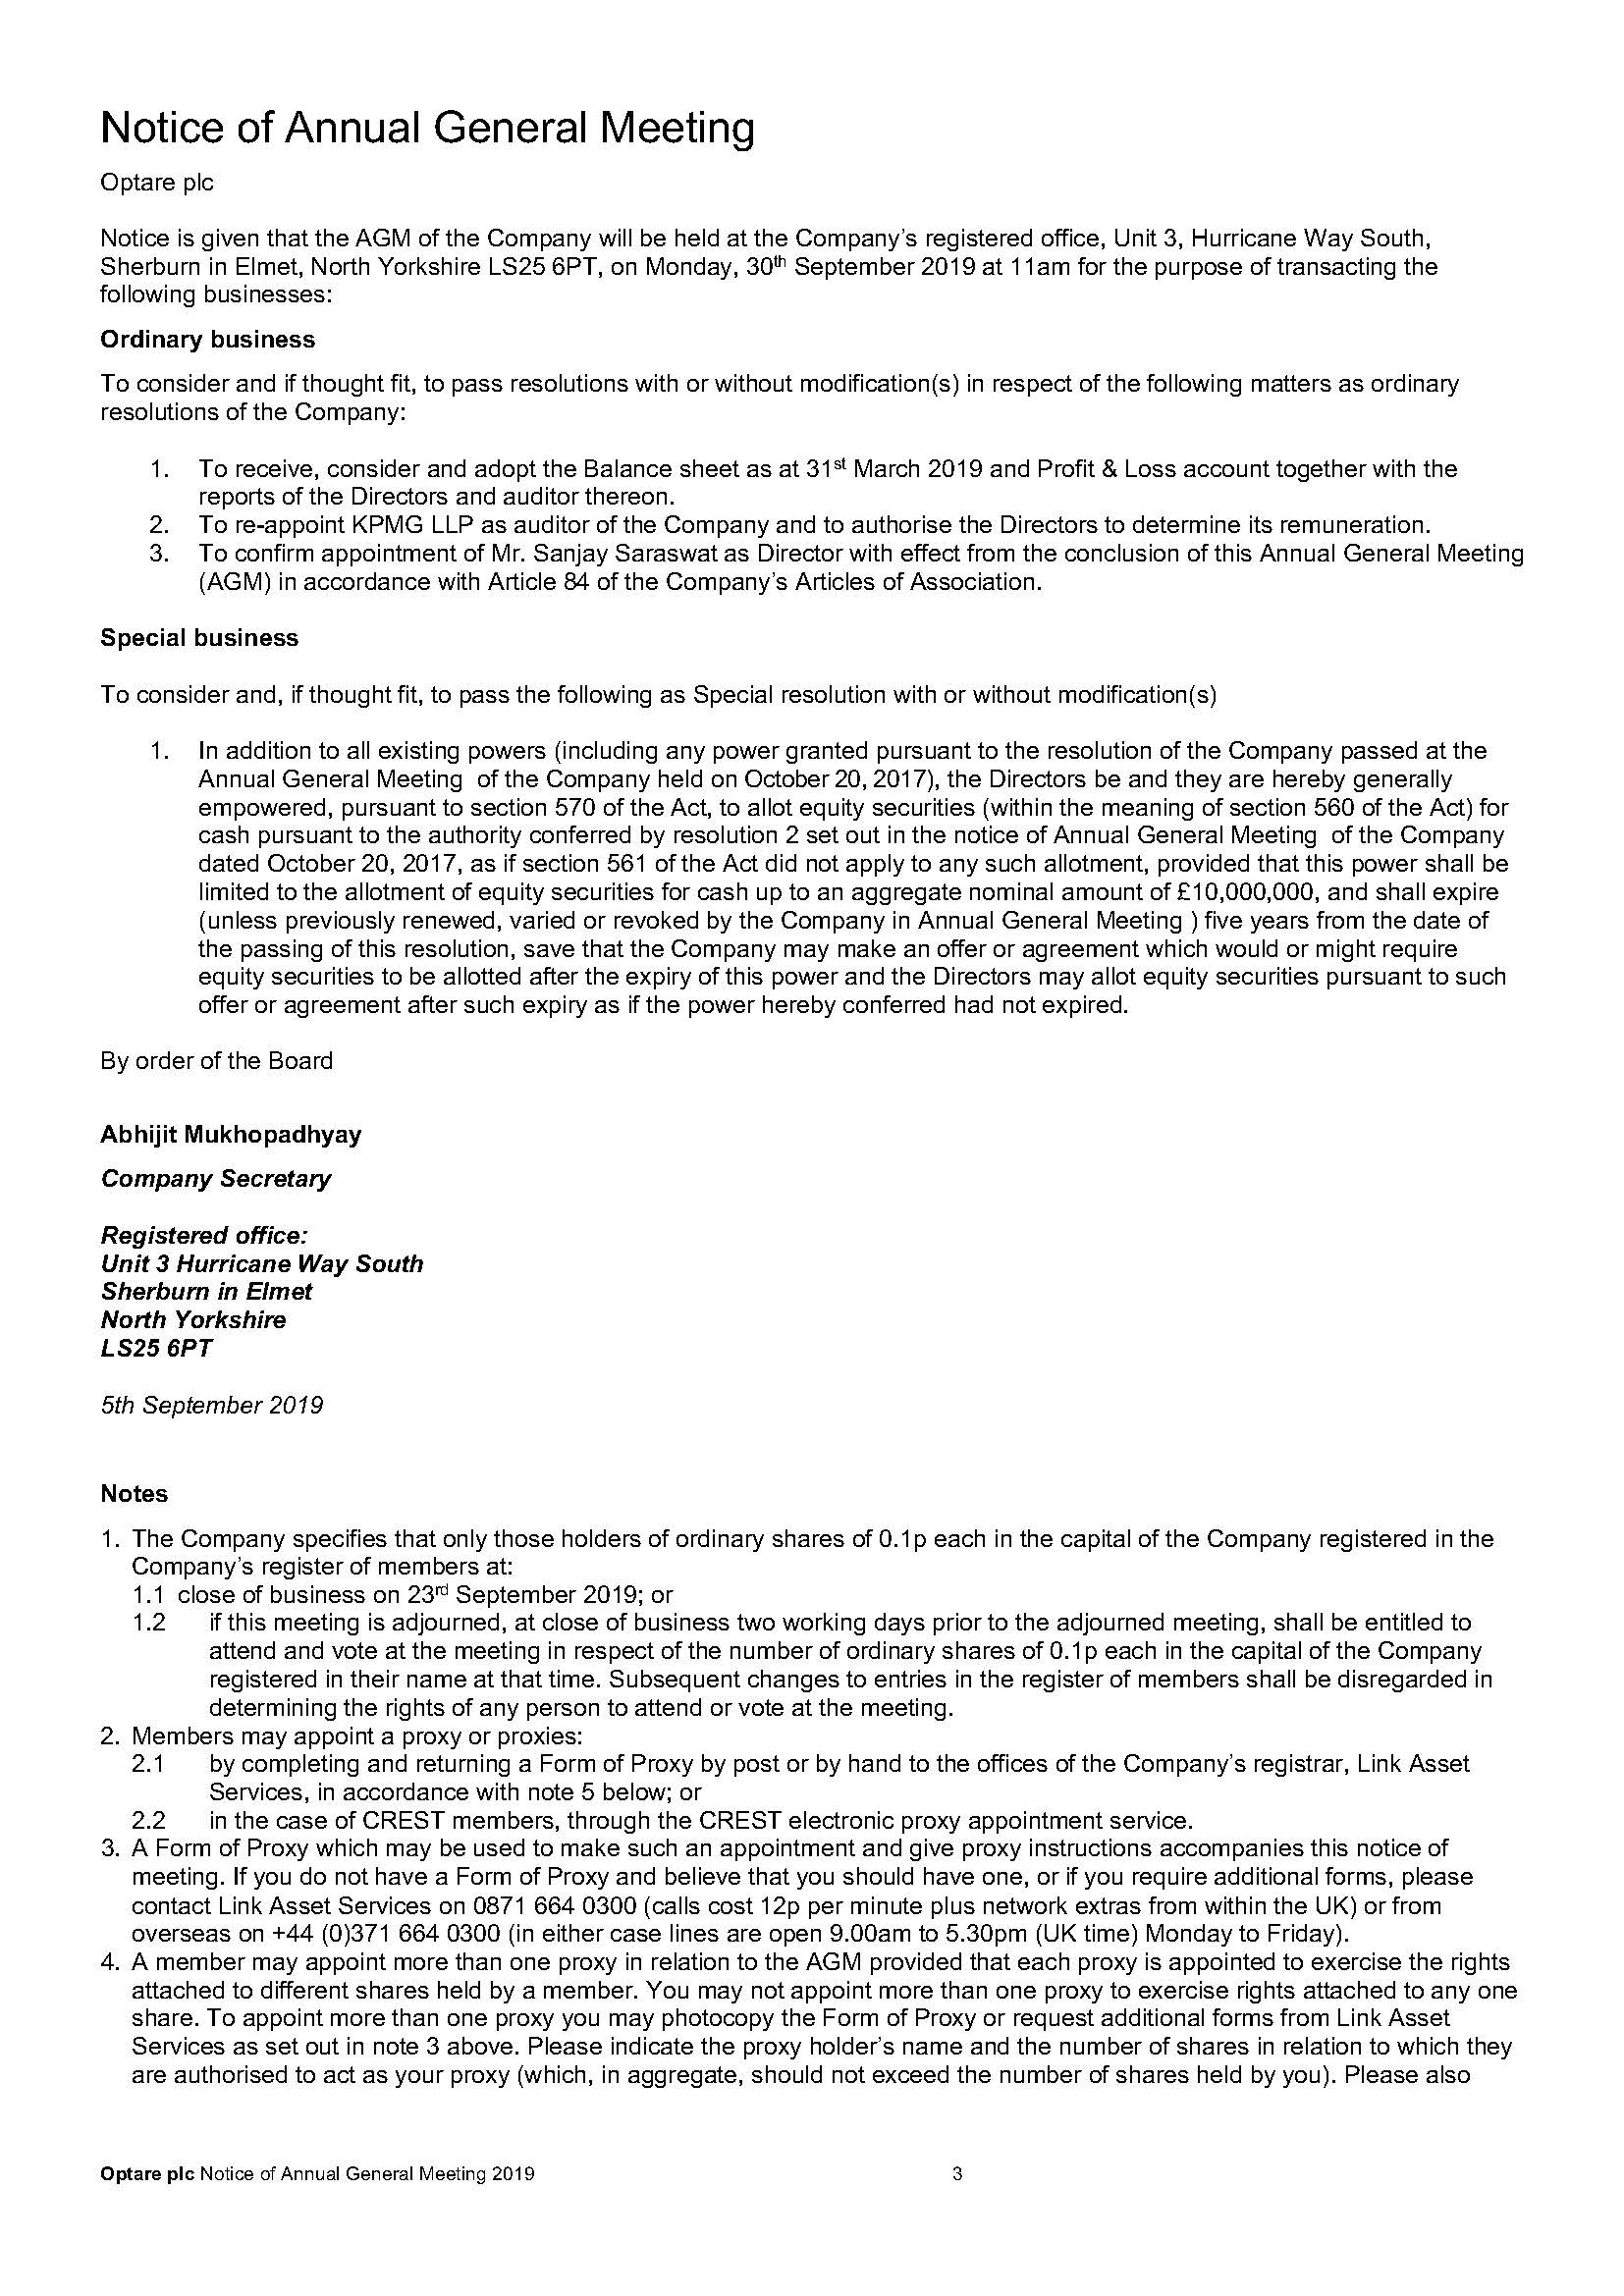 Optare plc Notice of Annual General Meeting 2019_Page_4.jpg